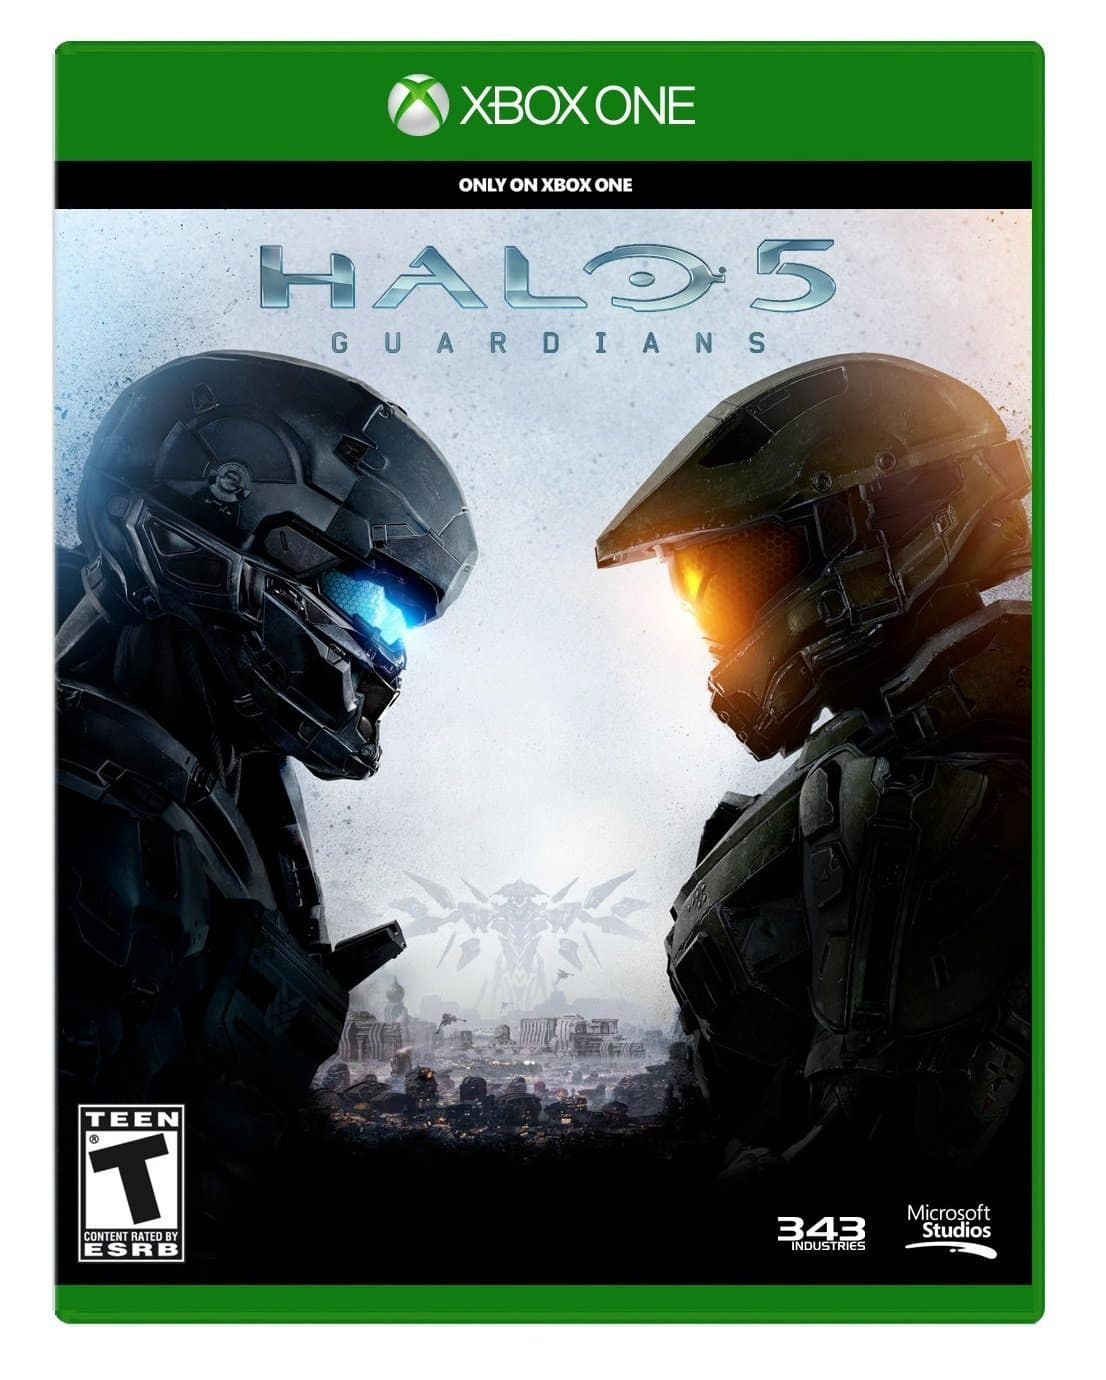 Halo 5: Guardians (Xbox One)  $40 + Free Shipping